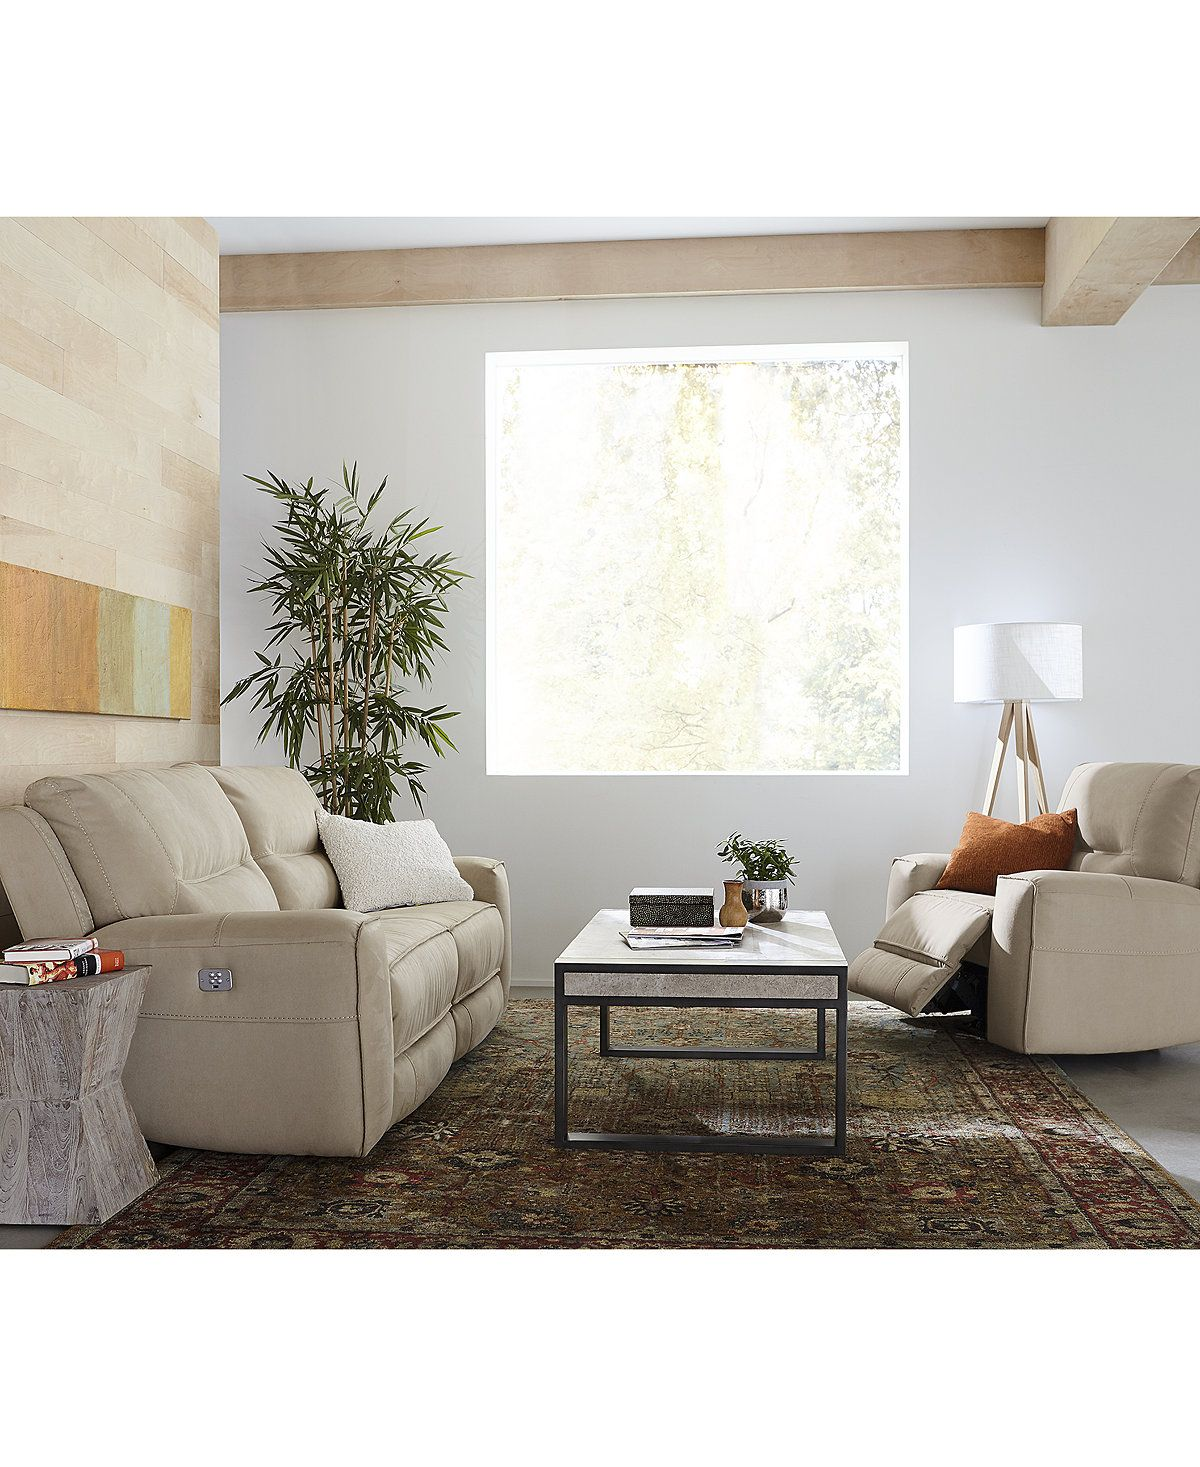 Macys Furniture Outlet Columbus: Sofas Outlet Sears Sofas Furniture Outlet 2017 Sofa Design